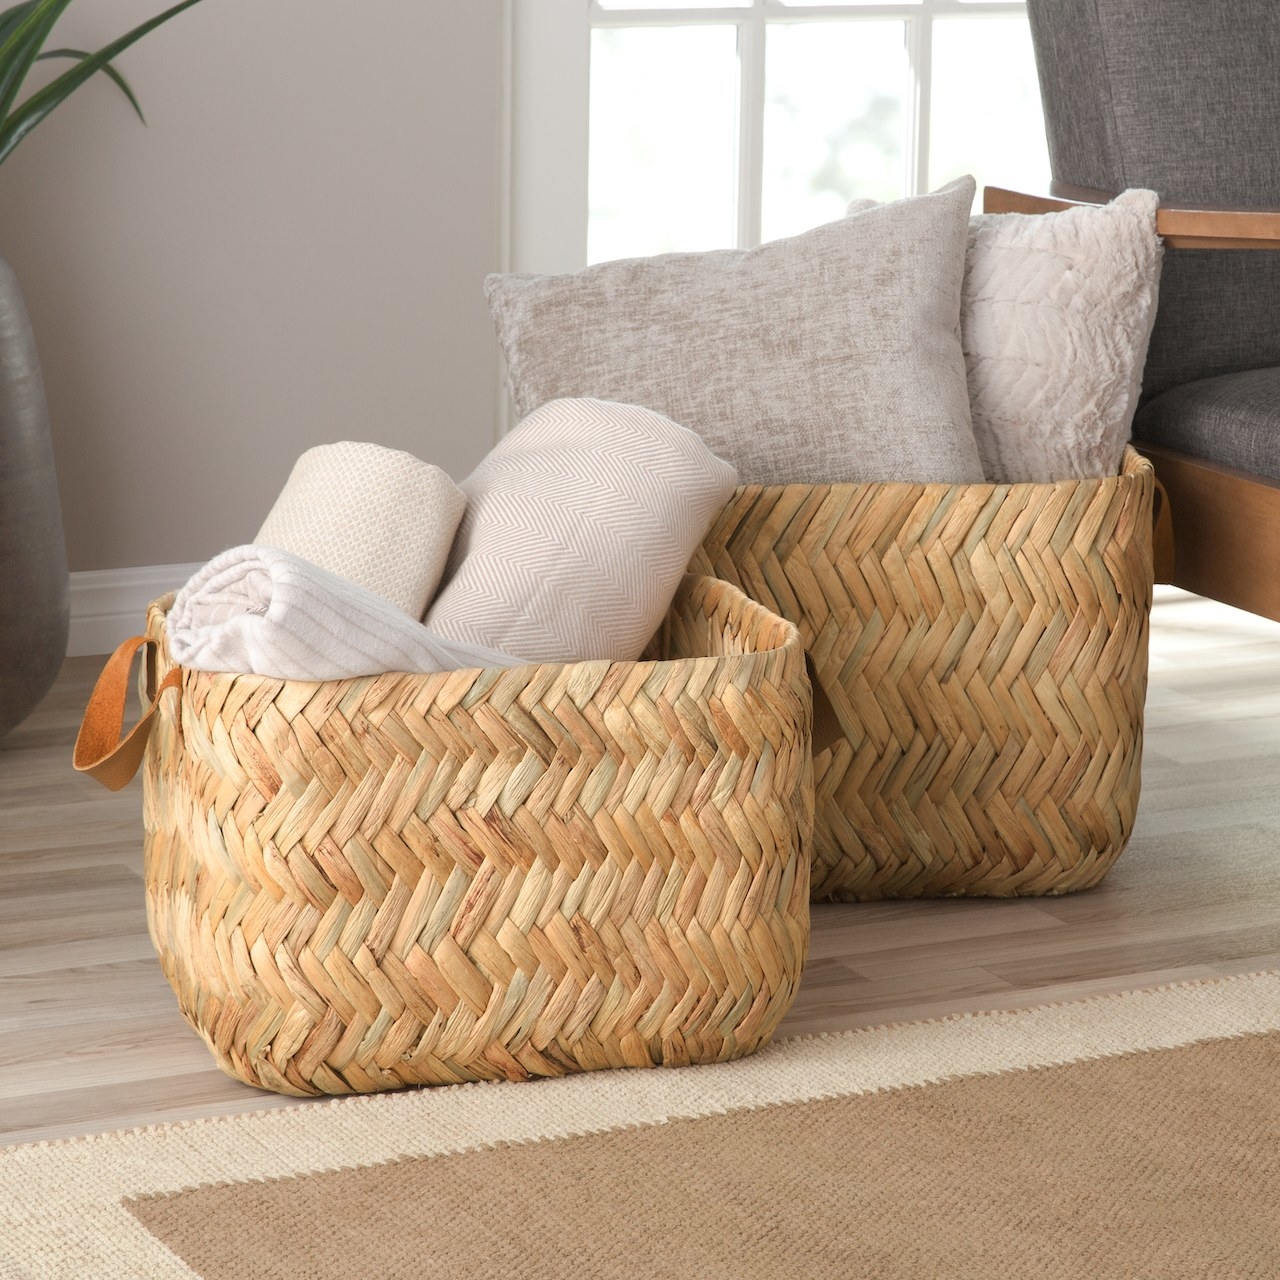 The baskets filled with pillows and blankets